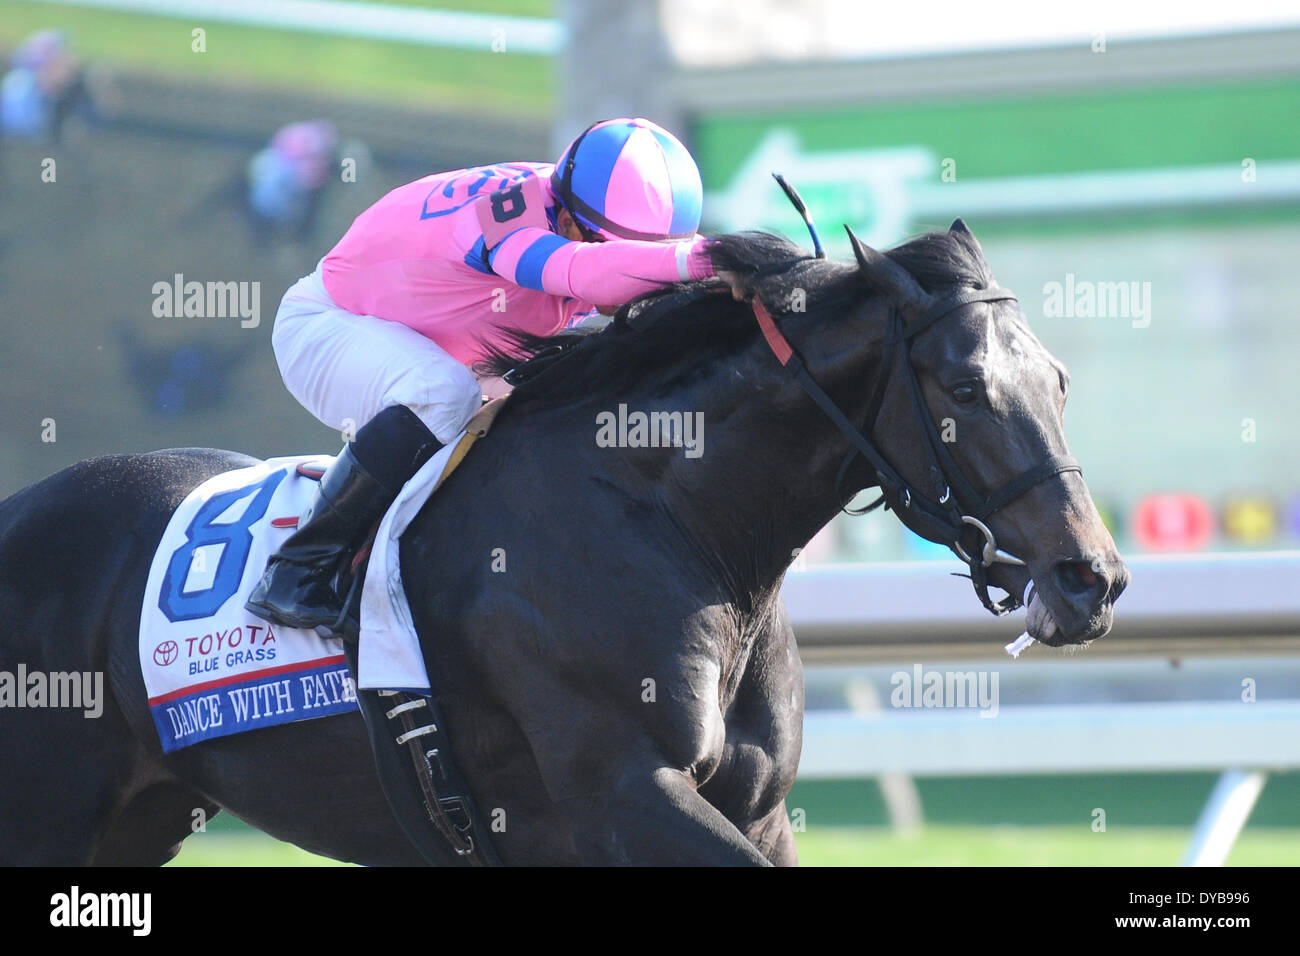 Lexington, KY, USA. 12th Apr, 2014. Aoril 12, 2014: Dance with Fate and jockey Corey Nakatani win the G1 Toyota Blue Grass S. at Keeneland for owners Sharon Alesia, Bran Jam Stable and Ciaglia Racing and trainer Peter Eurton.Jessica Morgan/ESW/CSM/Alamy Live News - Stock Image